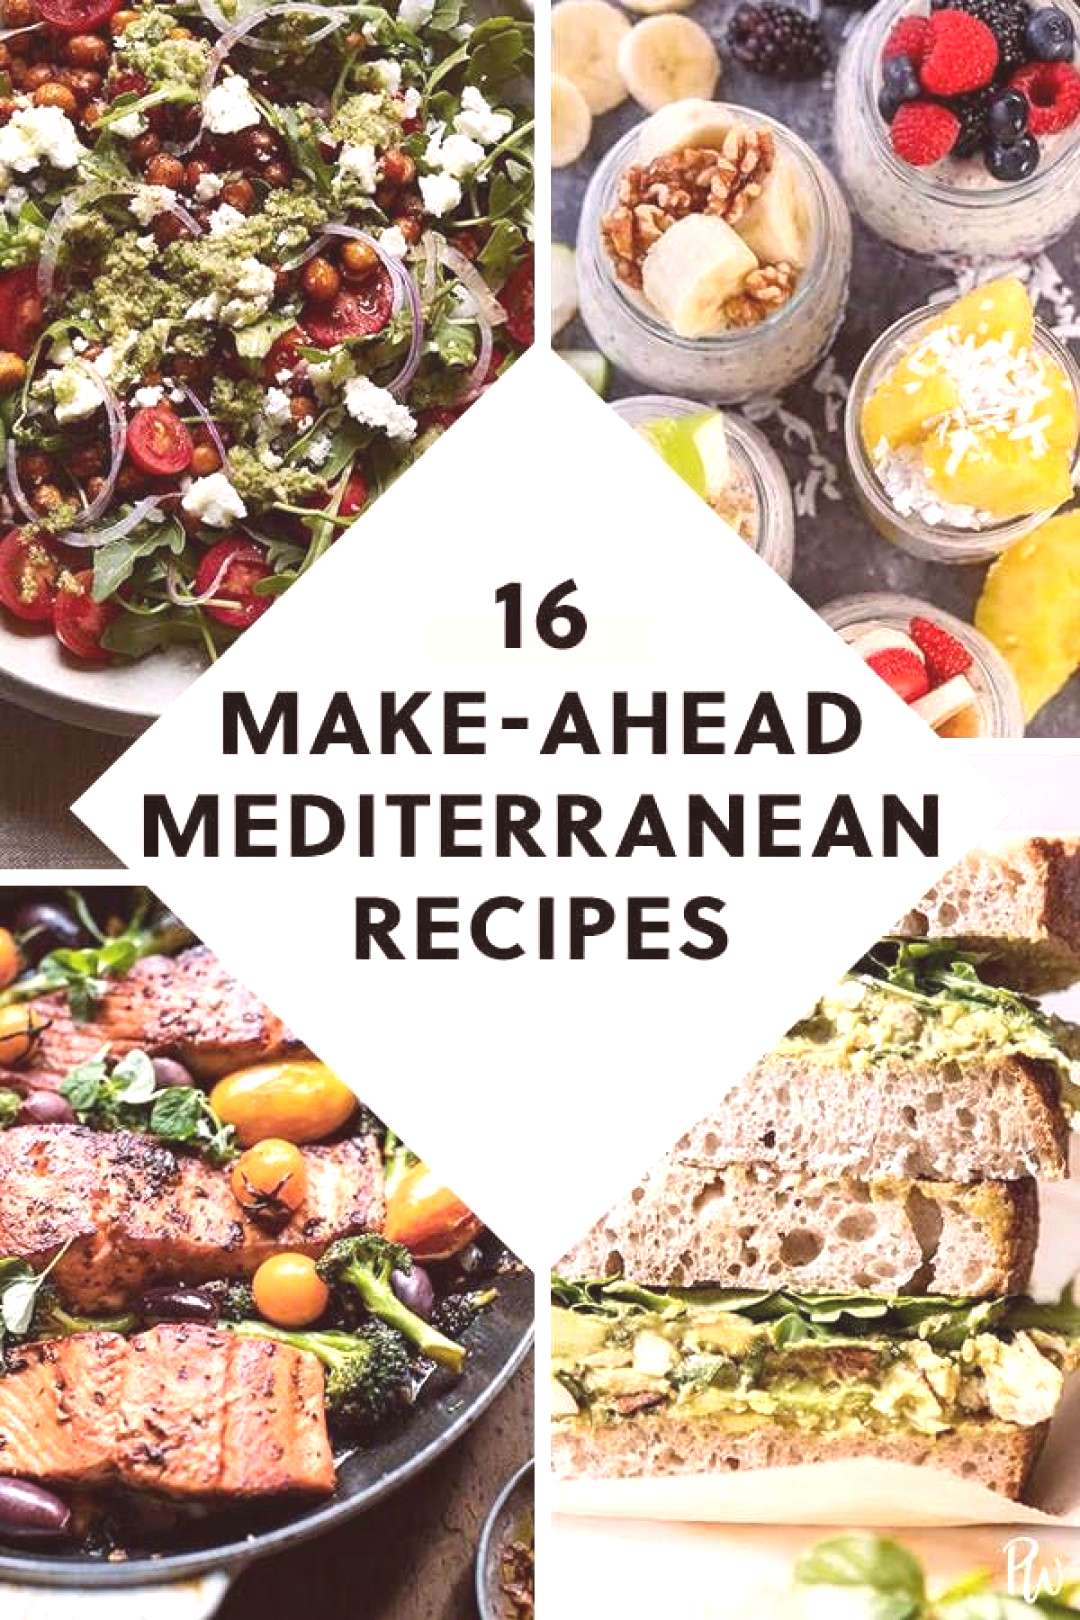 17 Make-Ahead Recipes That Are on the Mediterranean Diet prep